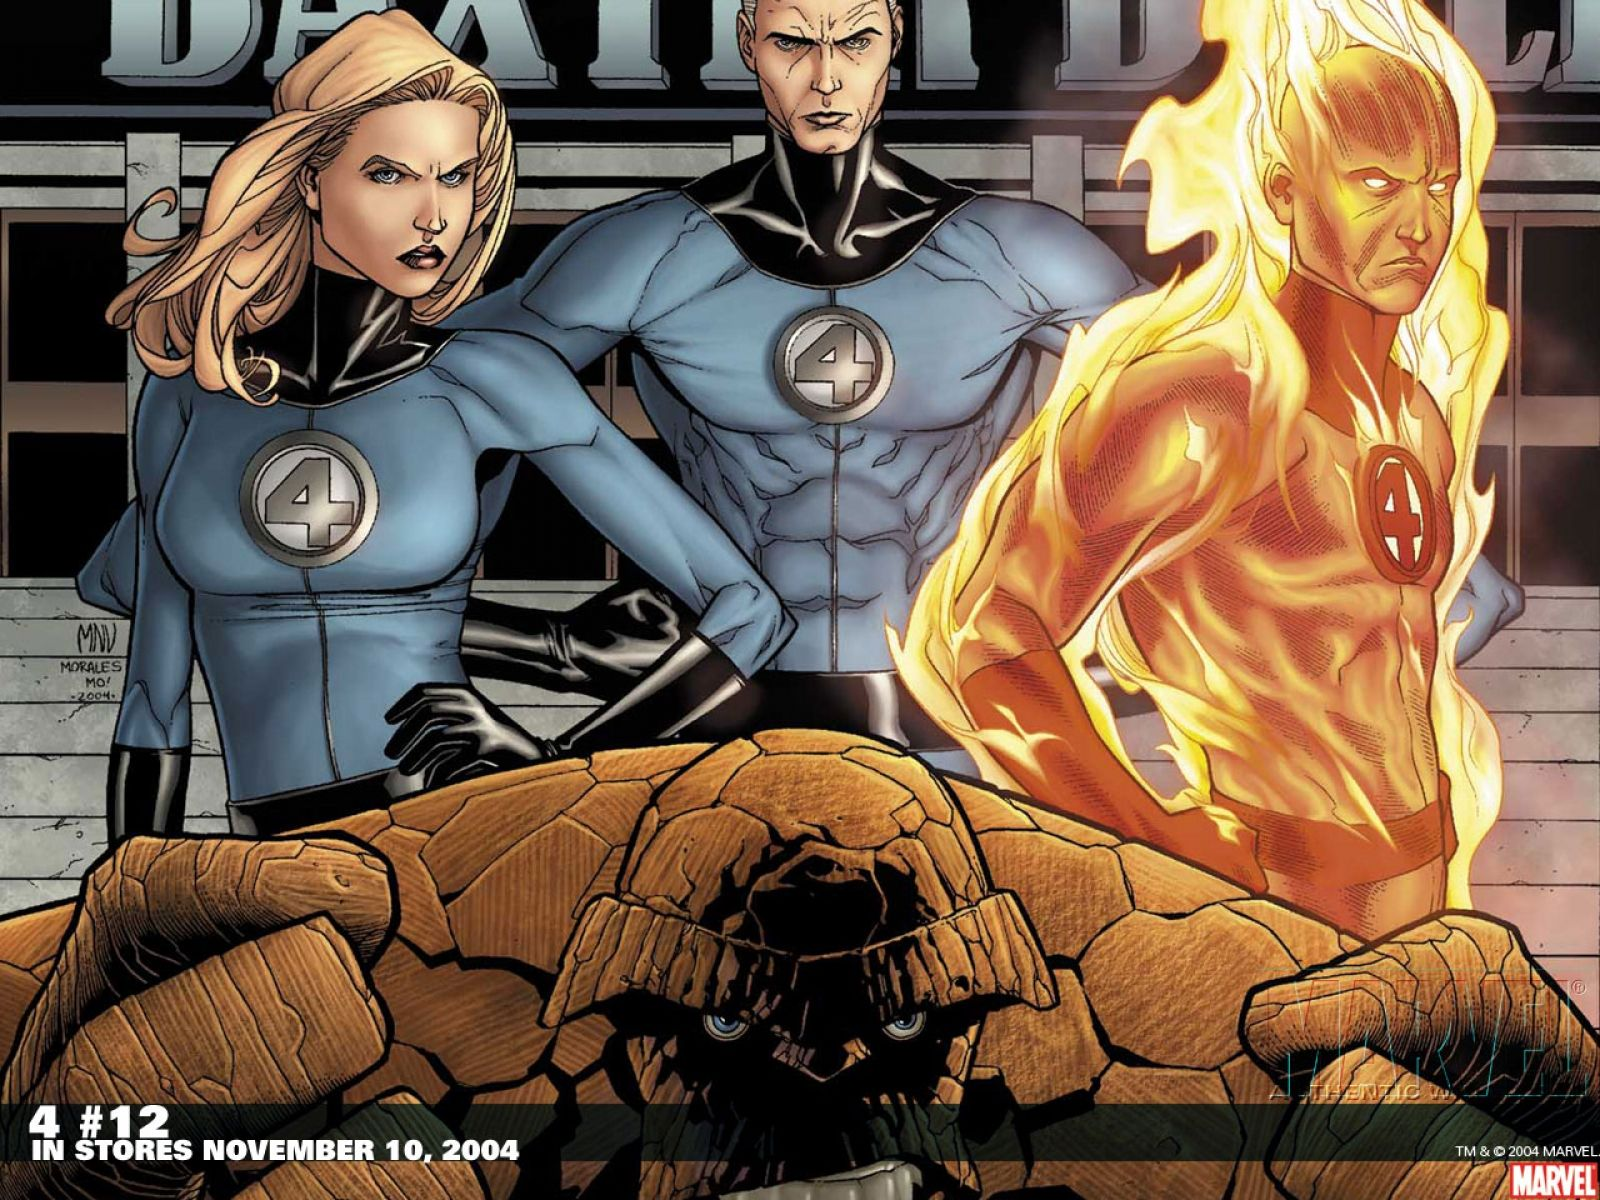 Fantastic Four Computer Wallpapers Desktop Backgrounds 1600x1200 Id 98234 Fantastic Four Marvel Mister Fantastic Fantastic Four